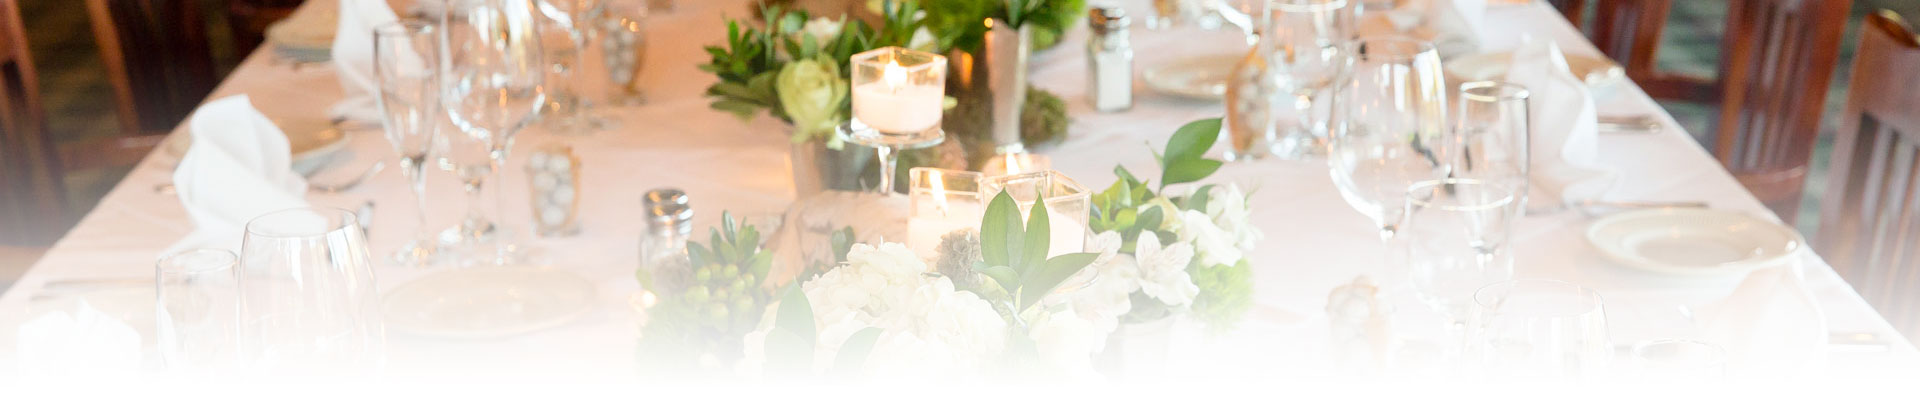 banner-weddings